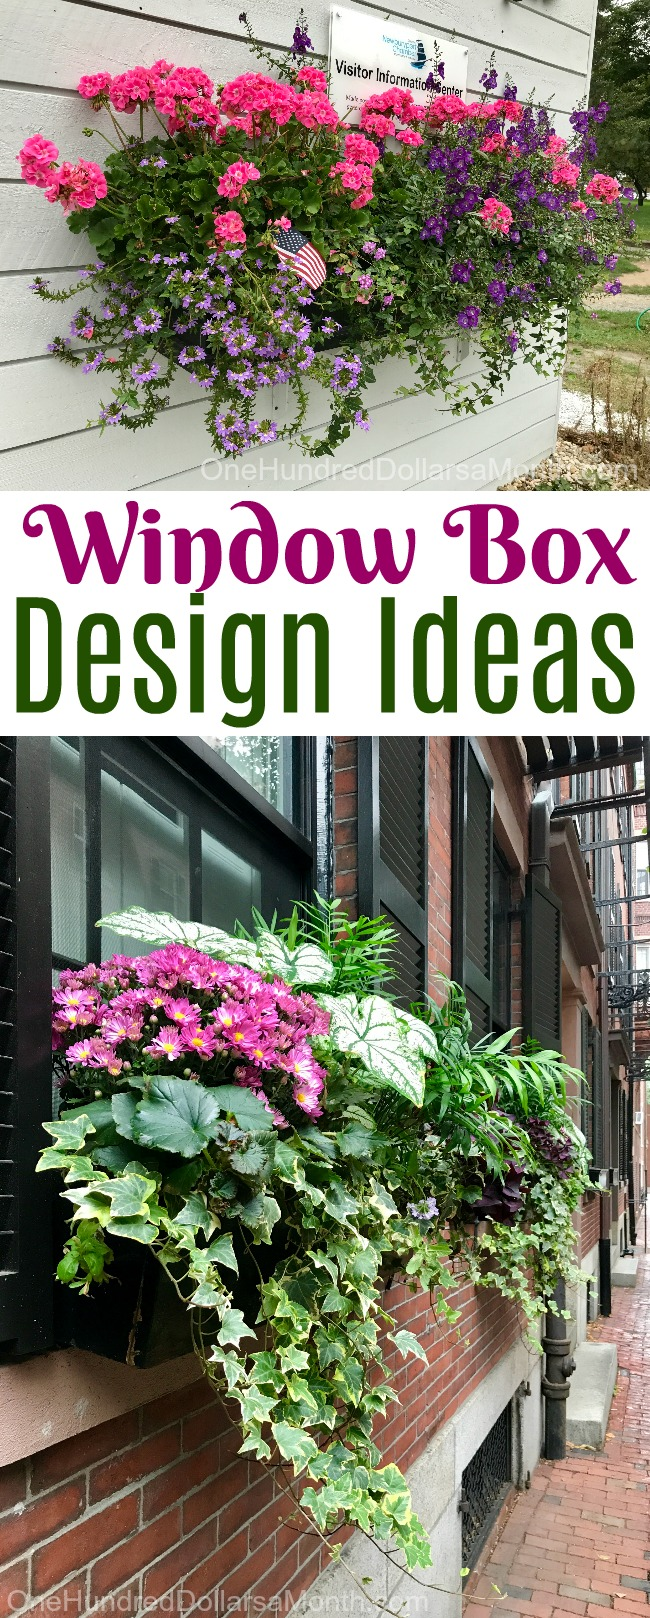 Beautiful Window Box Design Ideas from the Northeast